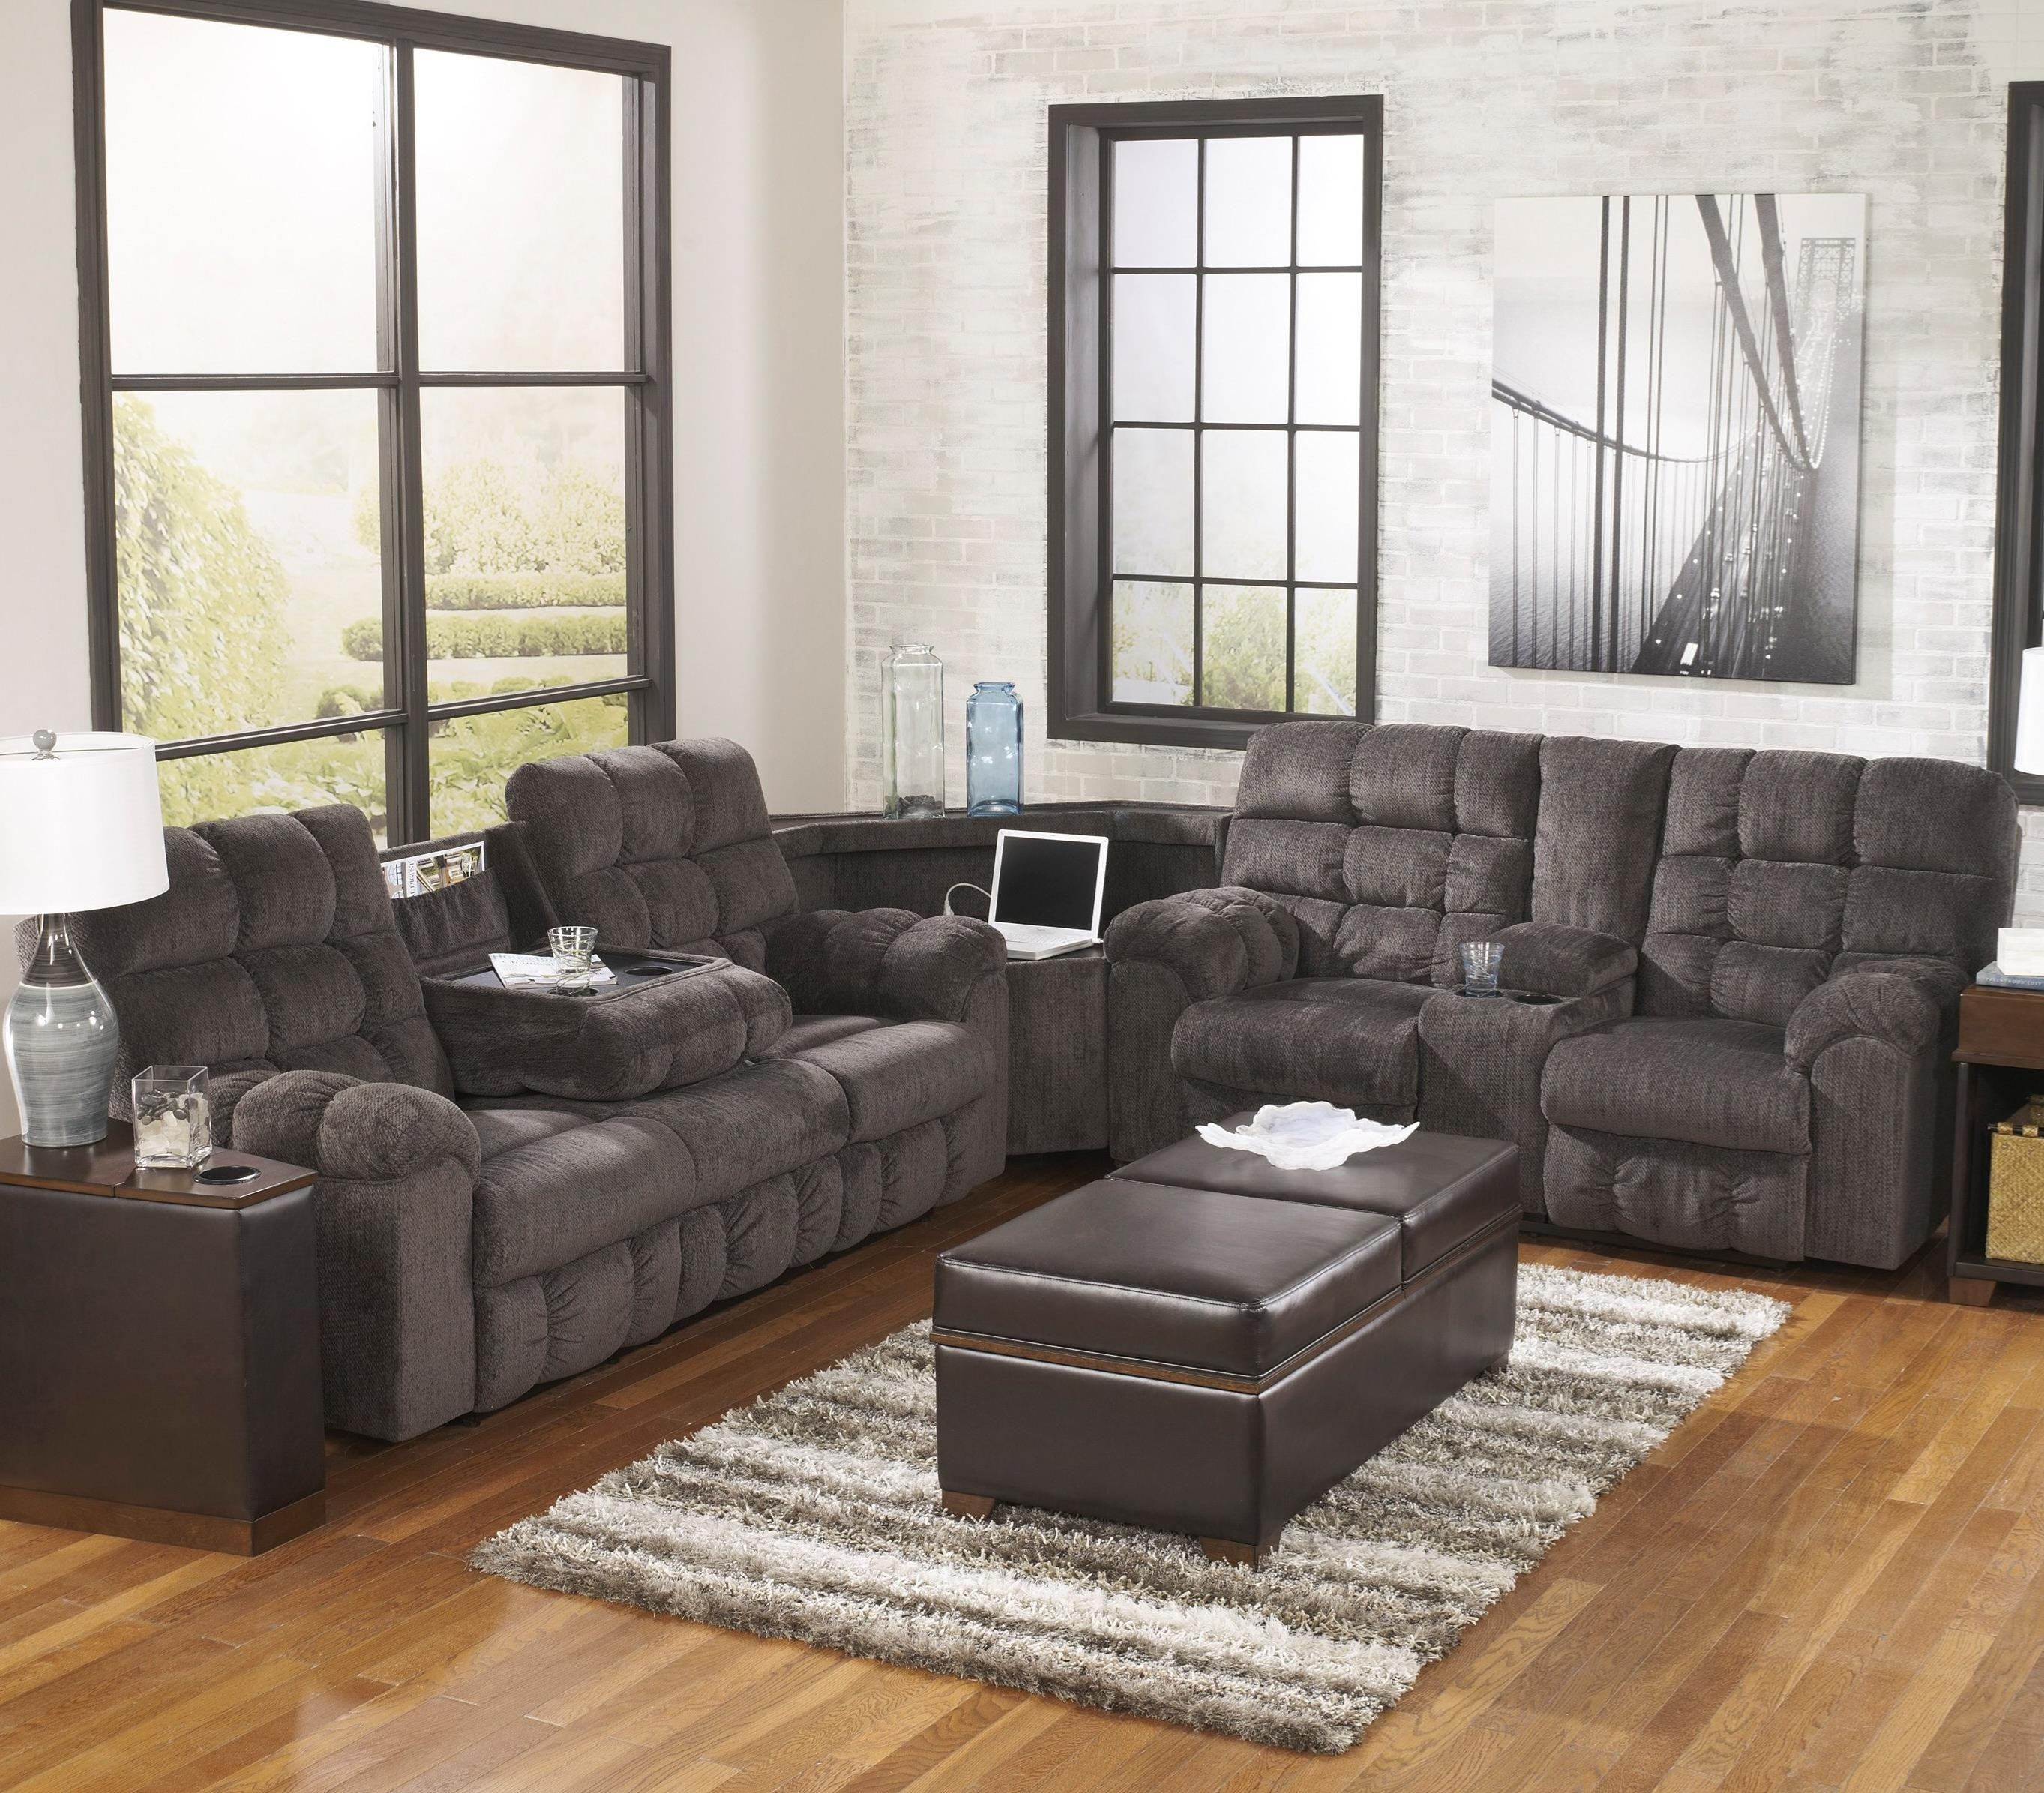 Acieona - Slate Reclining Sectional with Right Side Loveseat by Signature Design by Ashley at Catalog Outlet